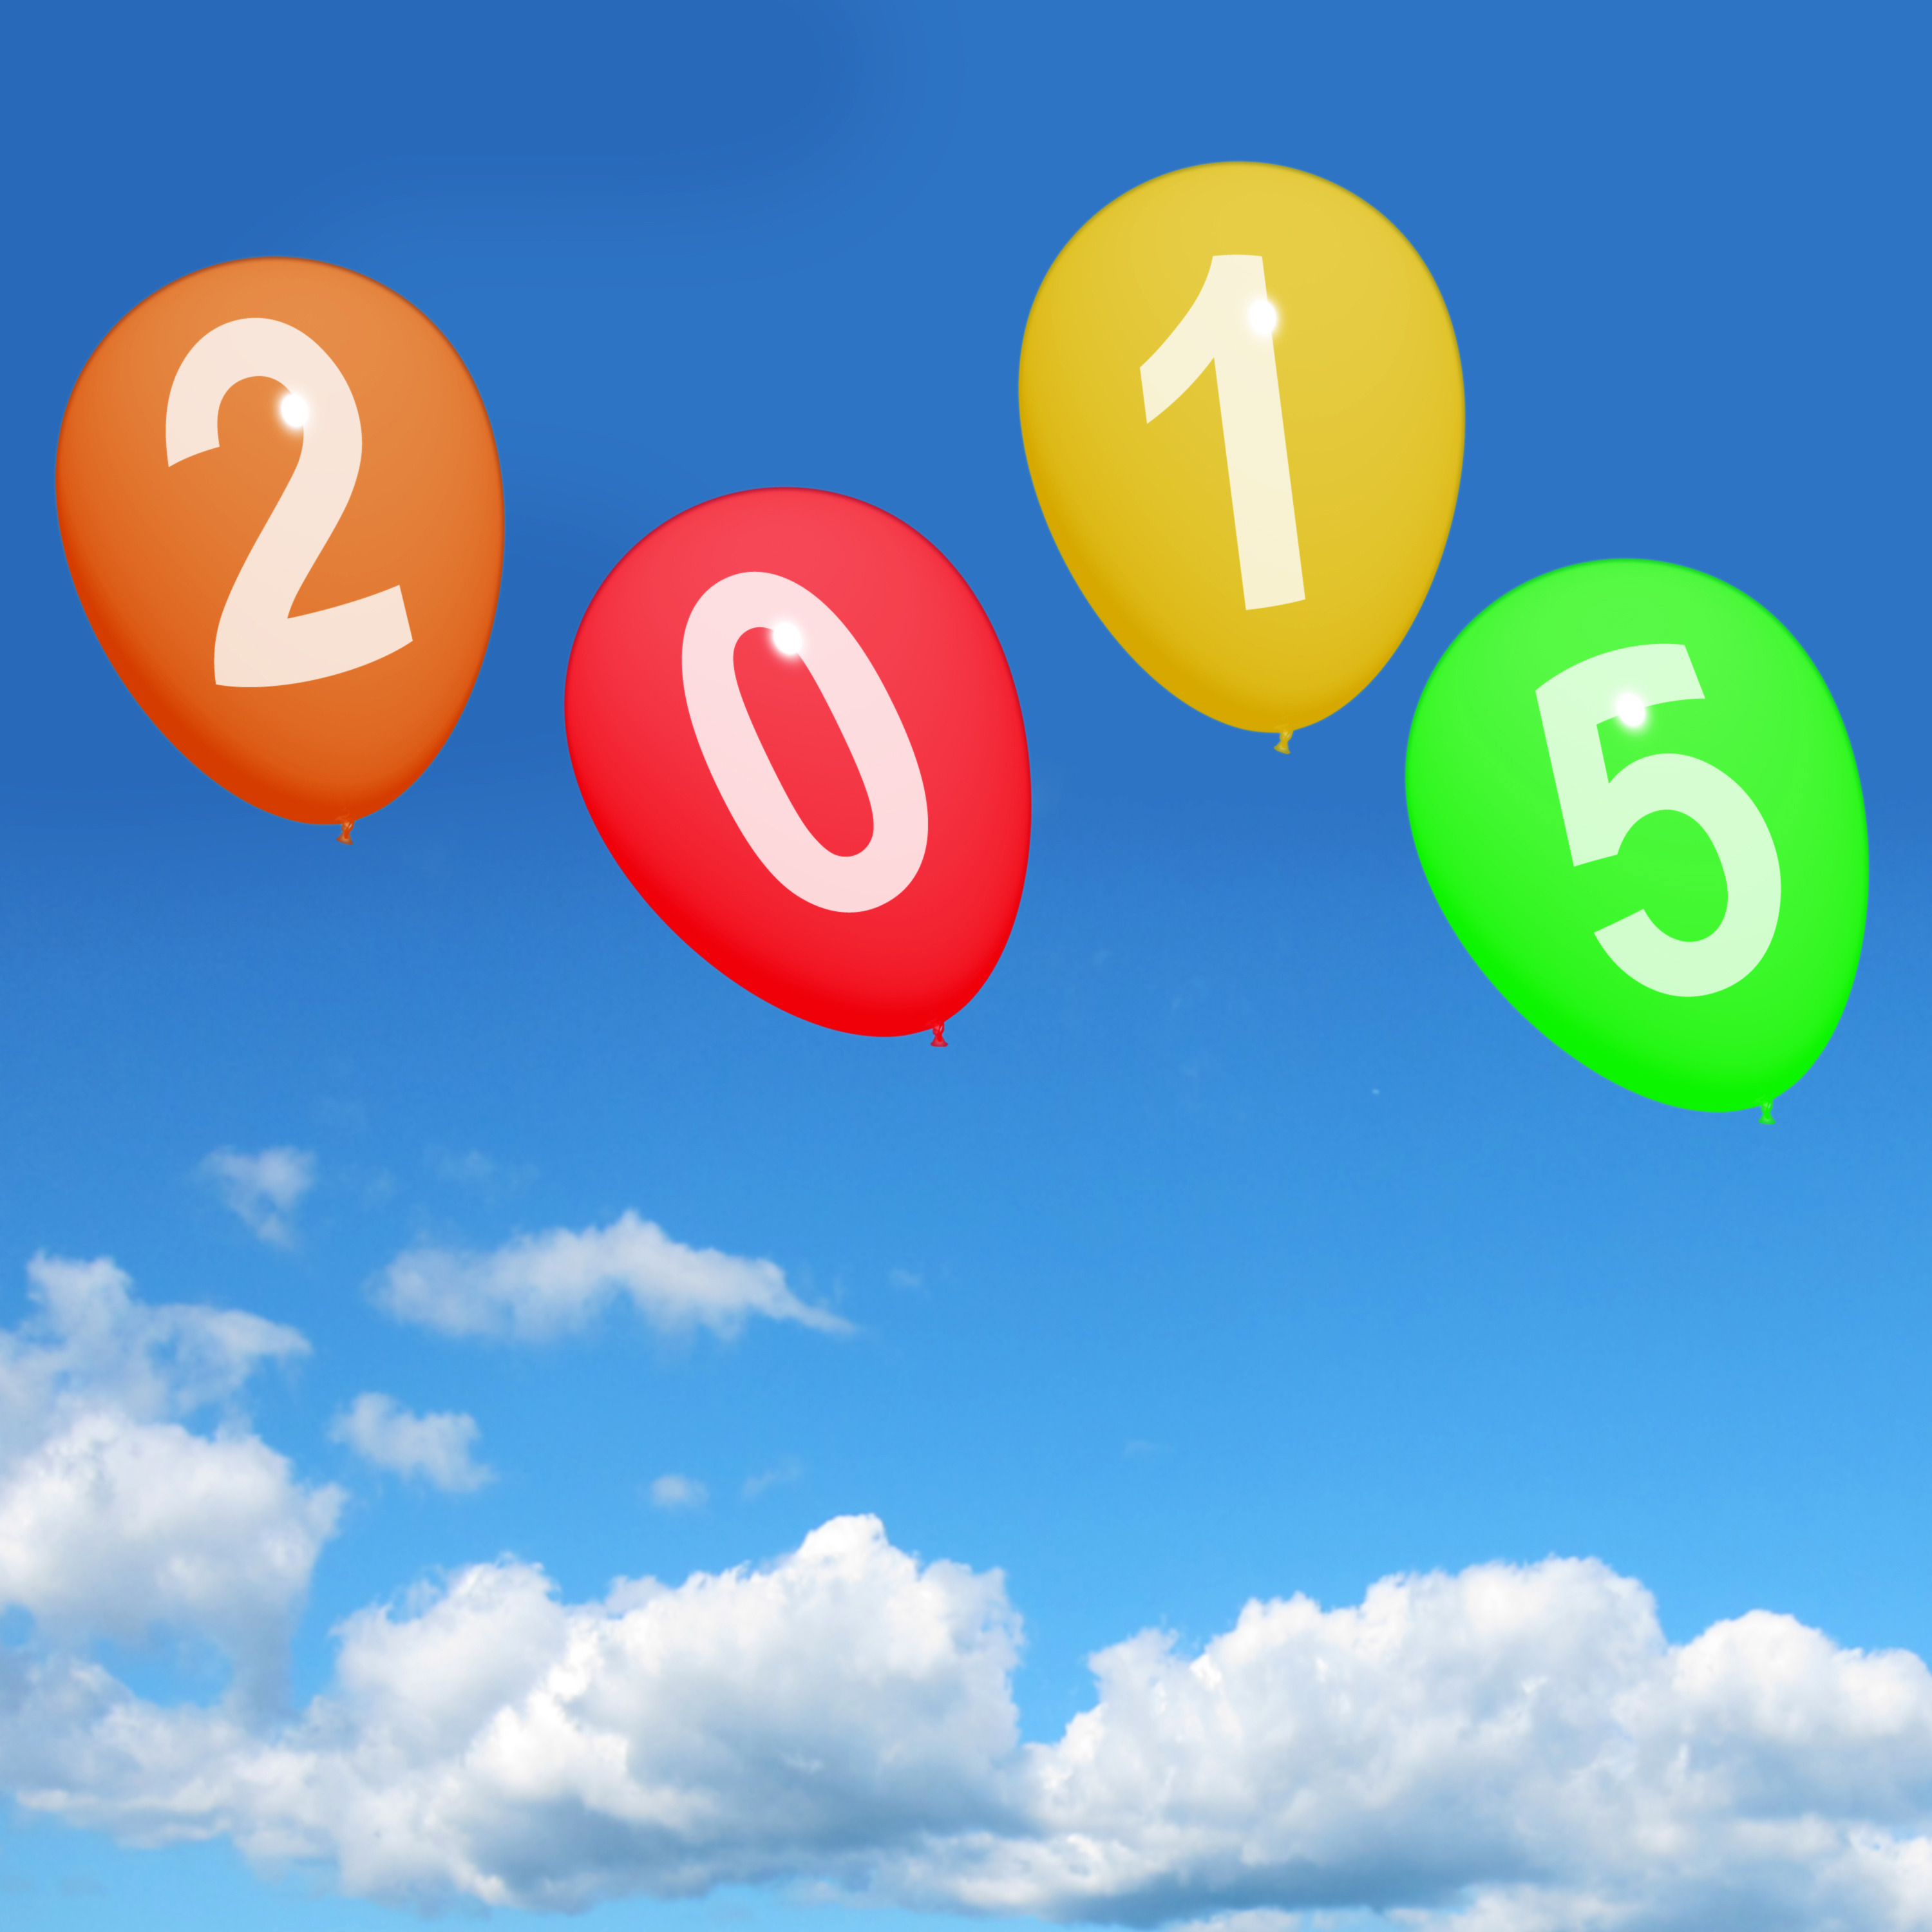 2015 On Balloons Representing Year Two Thousand And Fifteen Celebrations